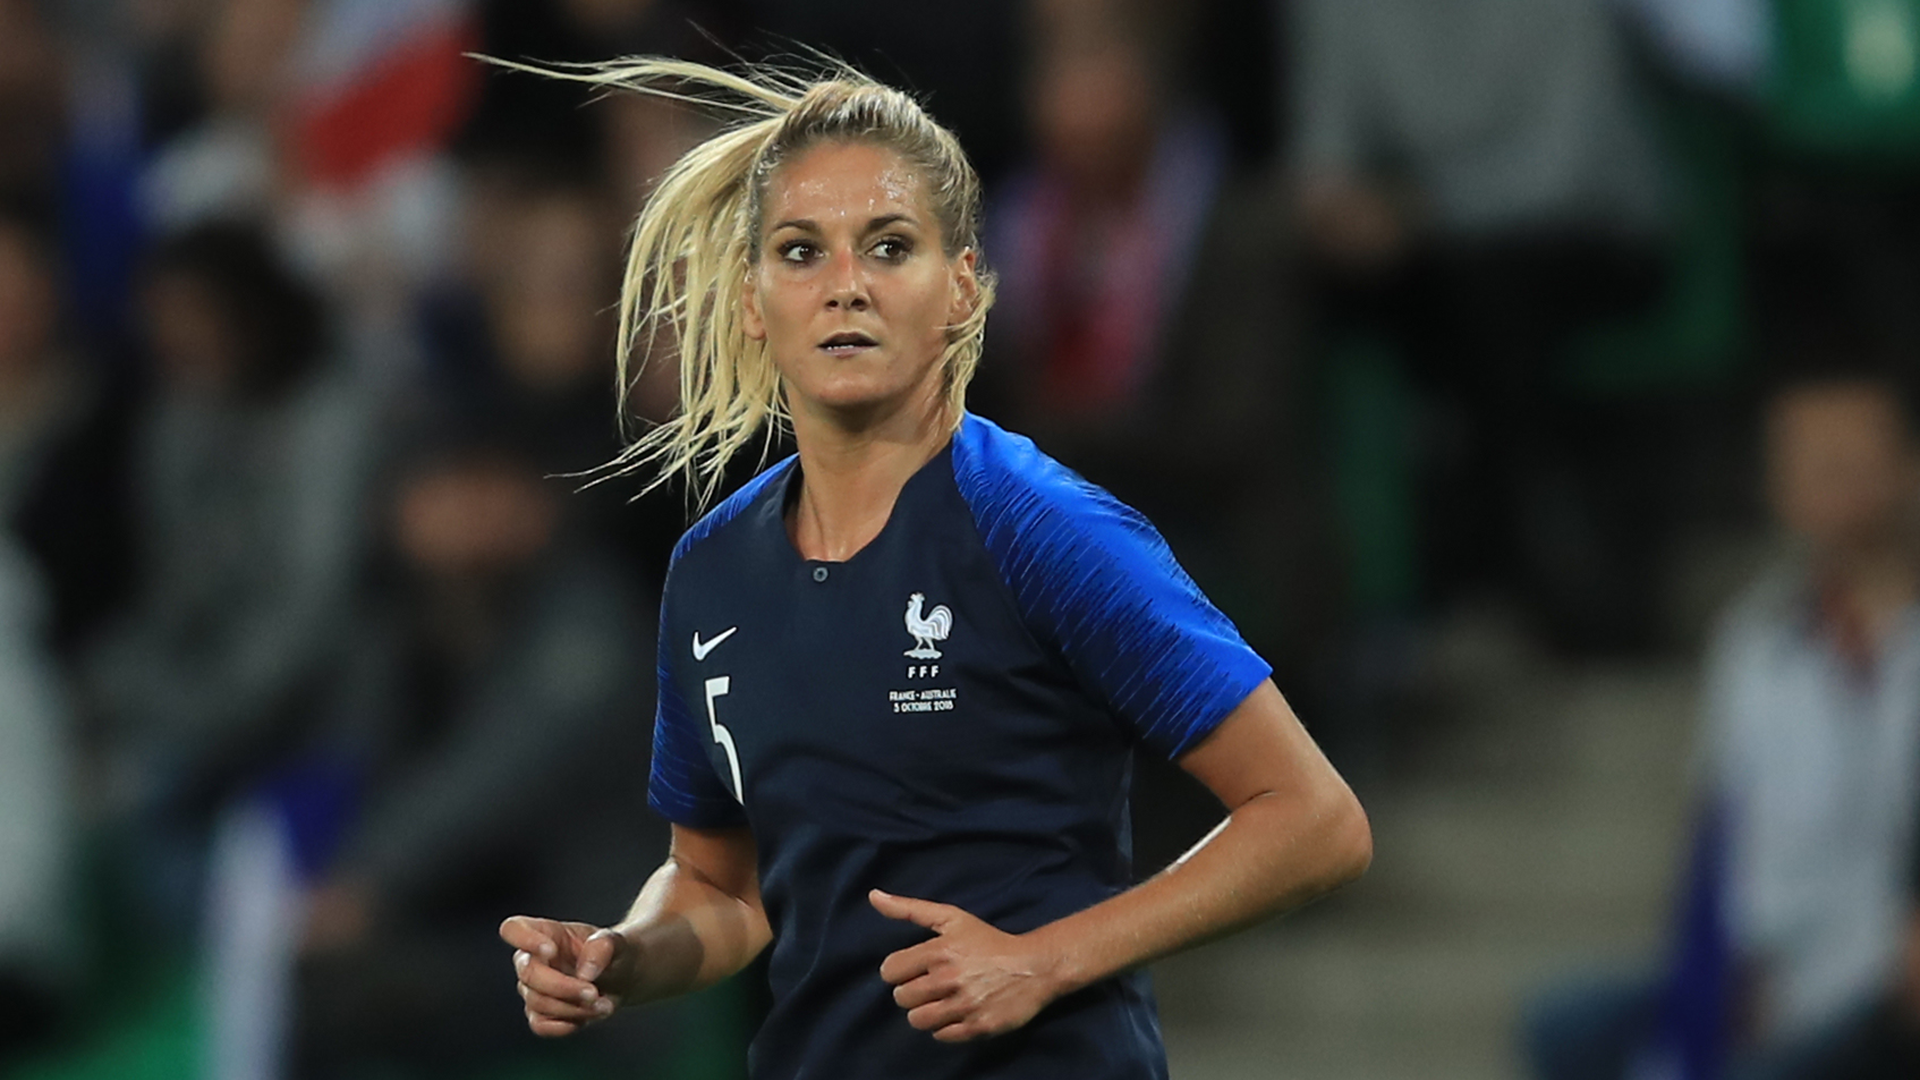 Julie Debever France women's team 2018